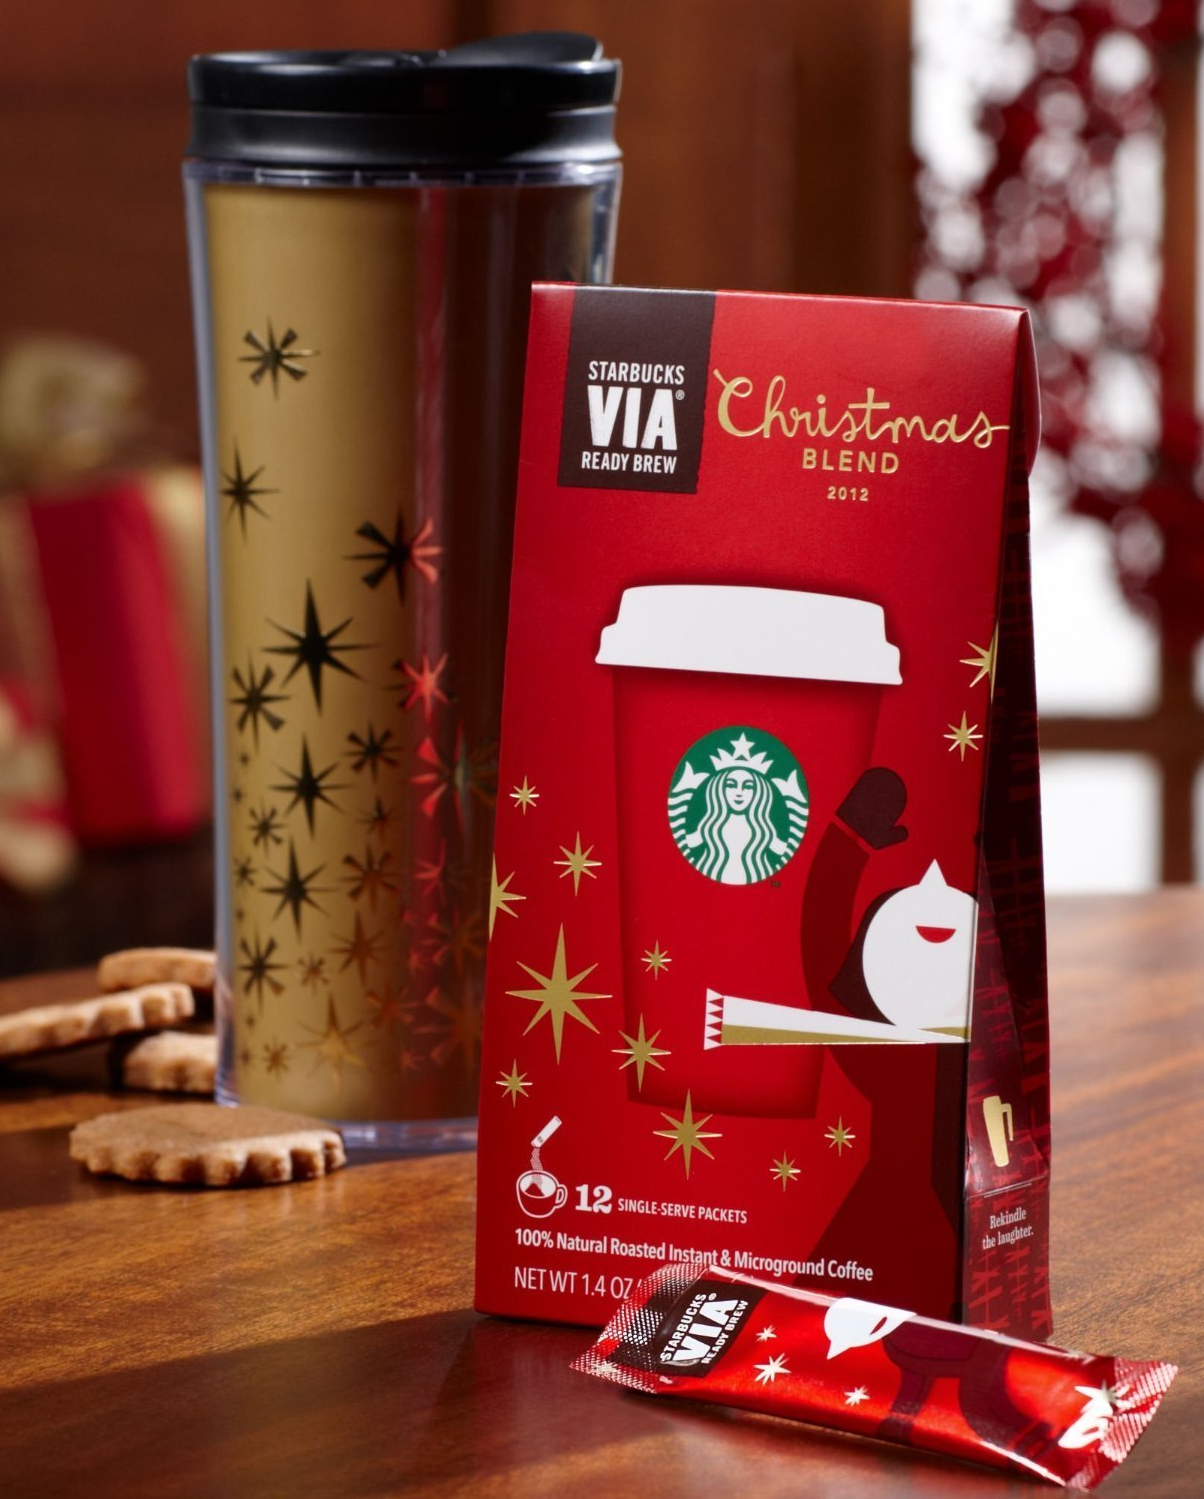 Gift Ideas For The 12 Days Of Christmas: The 12 Days Of Christmas Starbucks Gift Ideas...for True